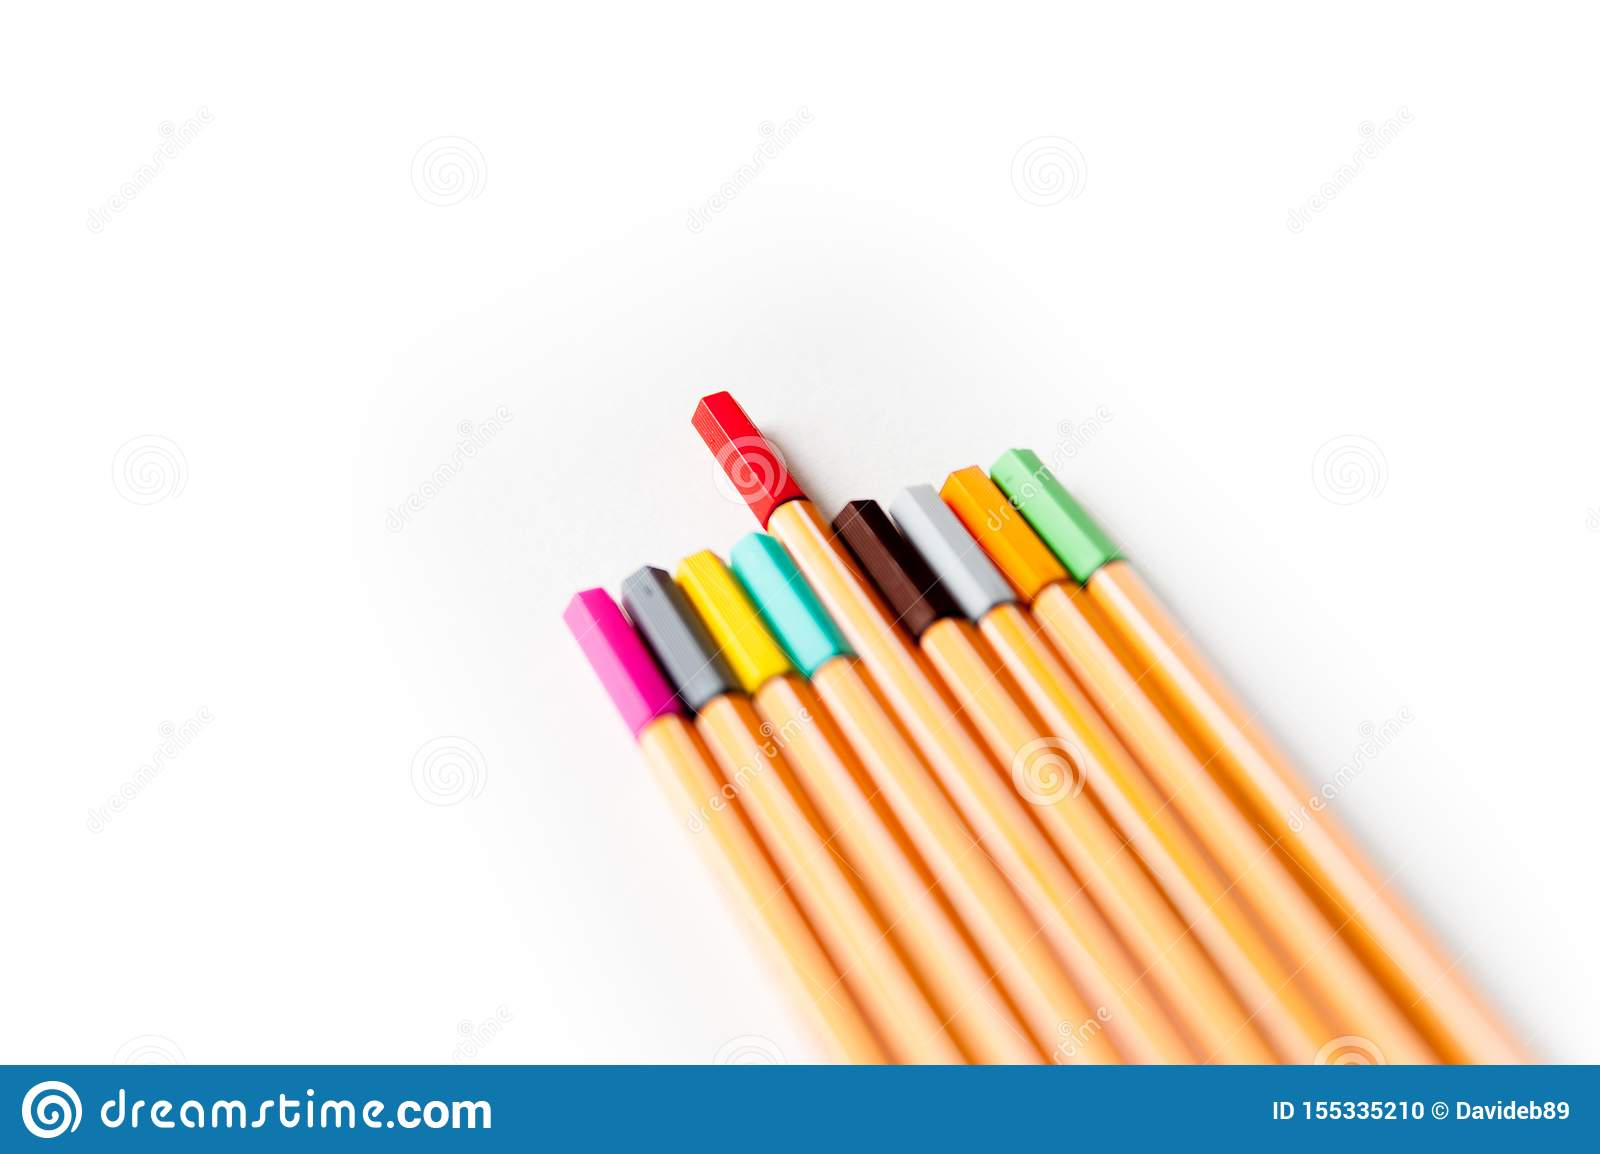 Set of colorful school markers as a symbol of education aims in fostering individuality and originality of individuals